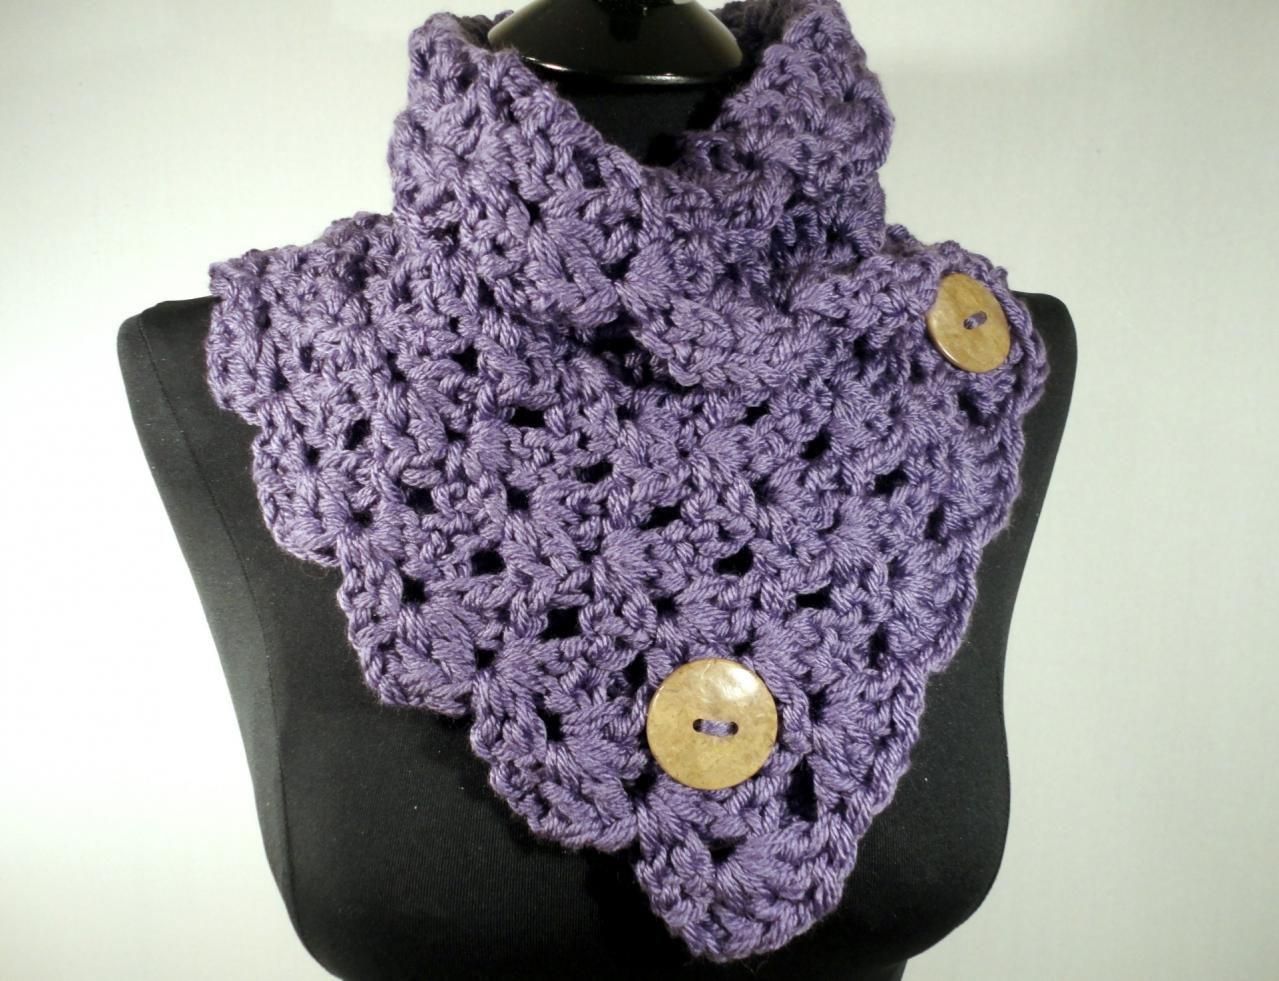 Crochet Scarf Pattern With Button : Crochet Pattern, Crochet Scarf Pattern, Crochet Cowl ...